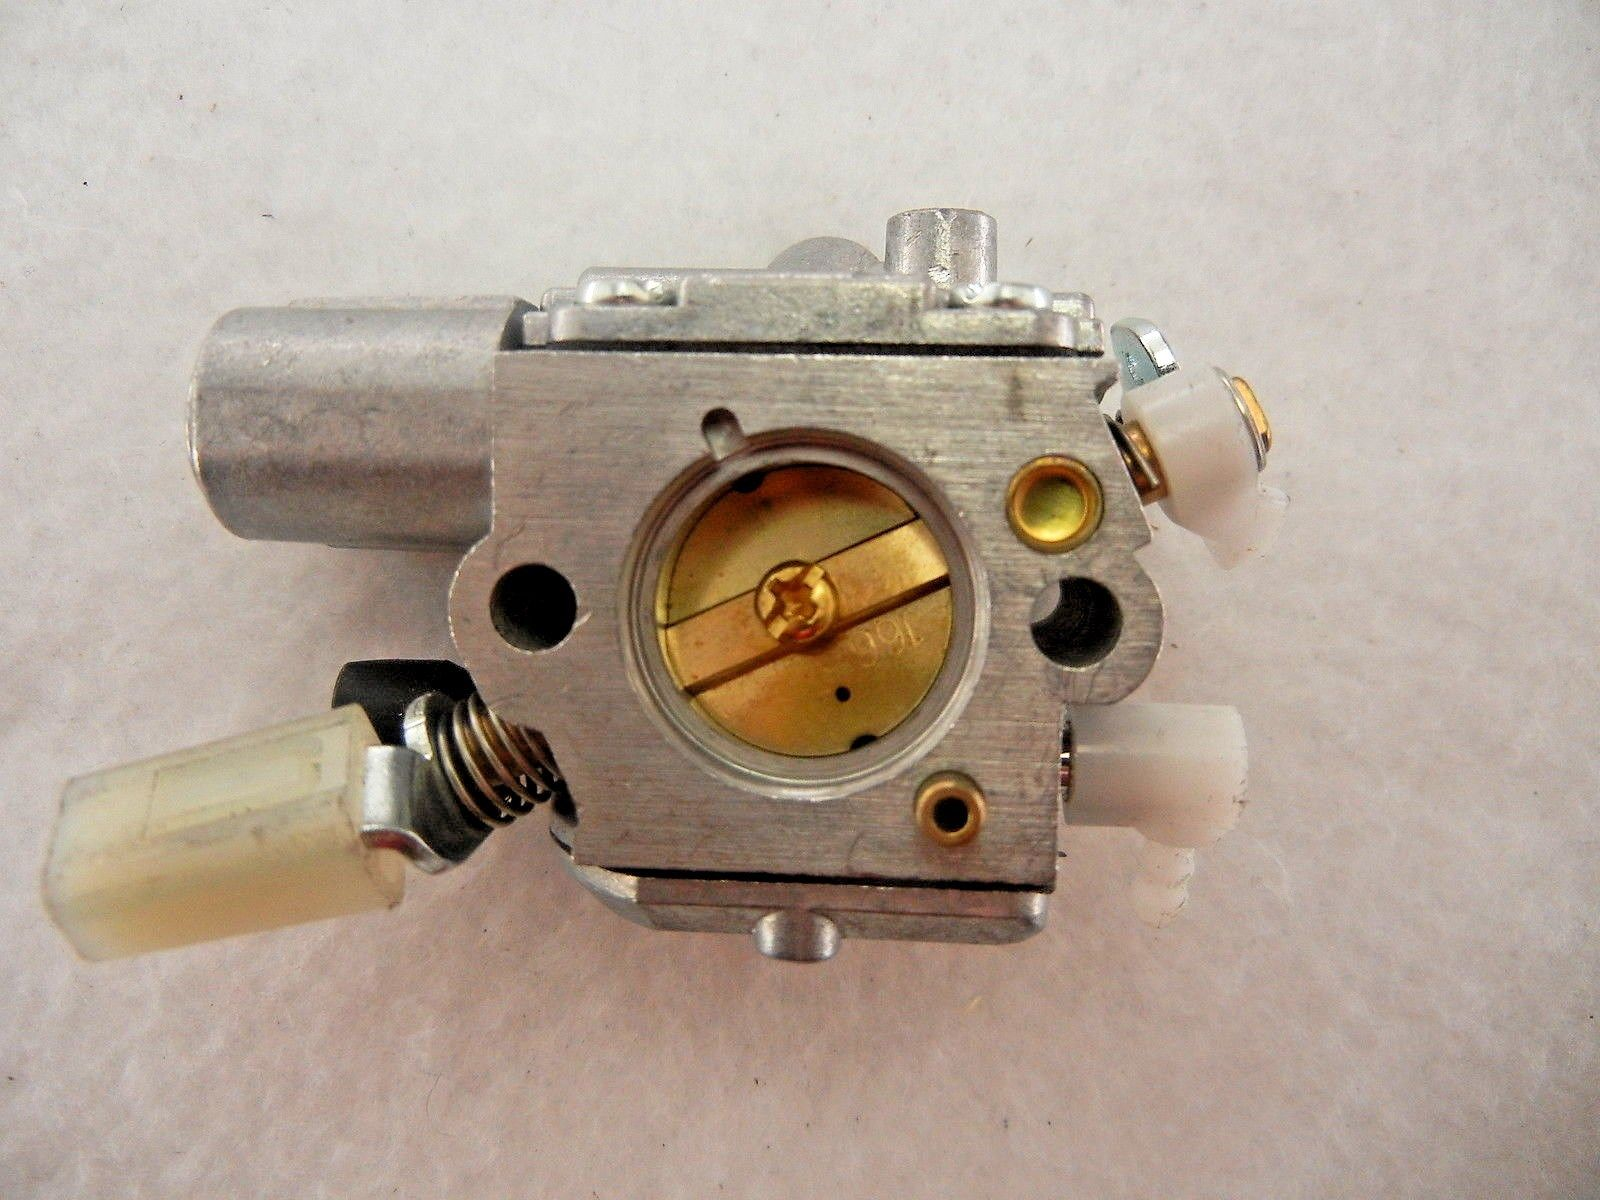 New Carburetor for STIHL MS 231, MS 251 replaces 1143 120 0641